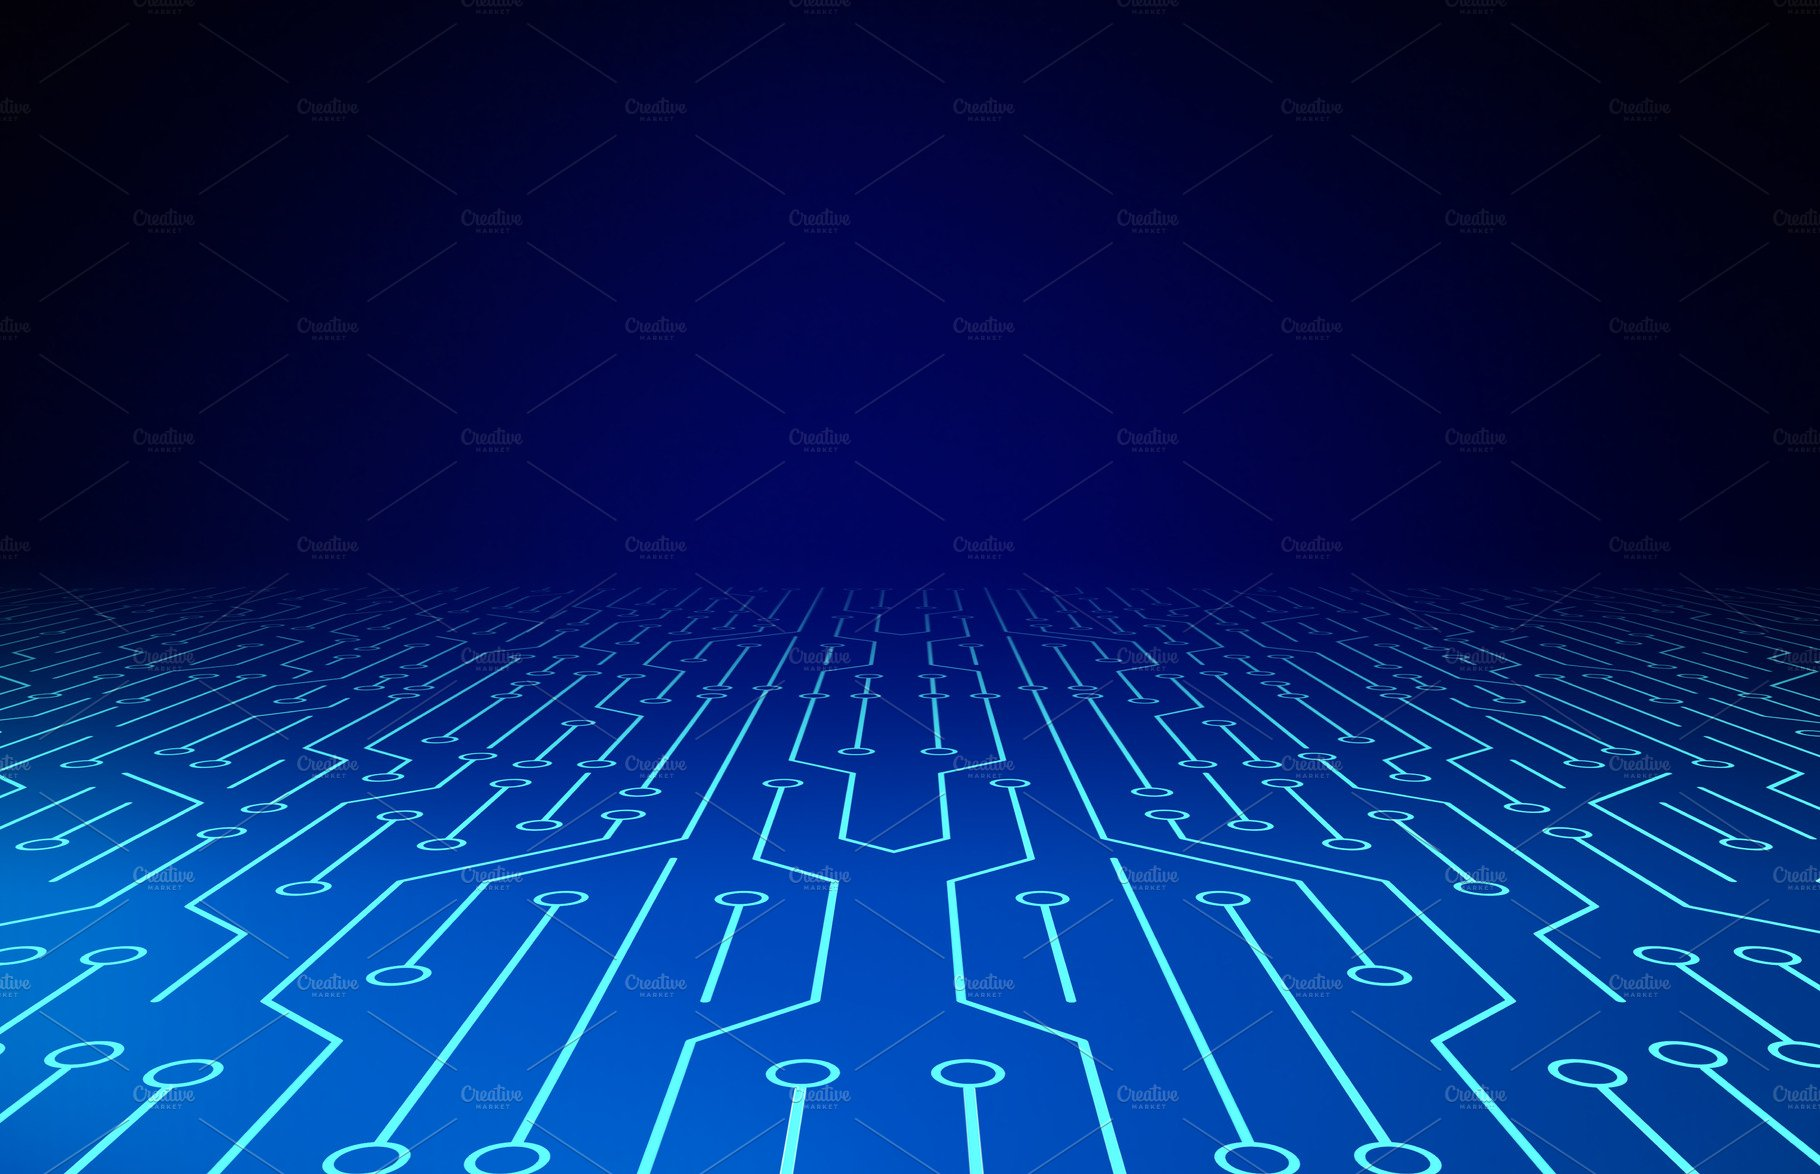 Circuit Board High Tech Technology Background Texture Pattern Photo Of Abstract Blue Vector With 3d Illustration Illustrations Creative Market